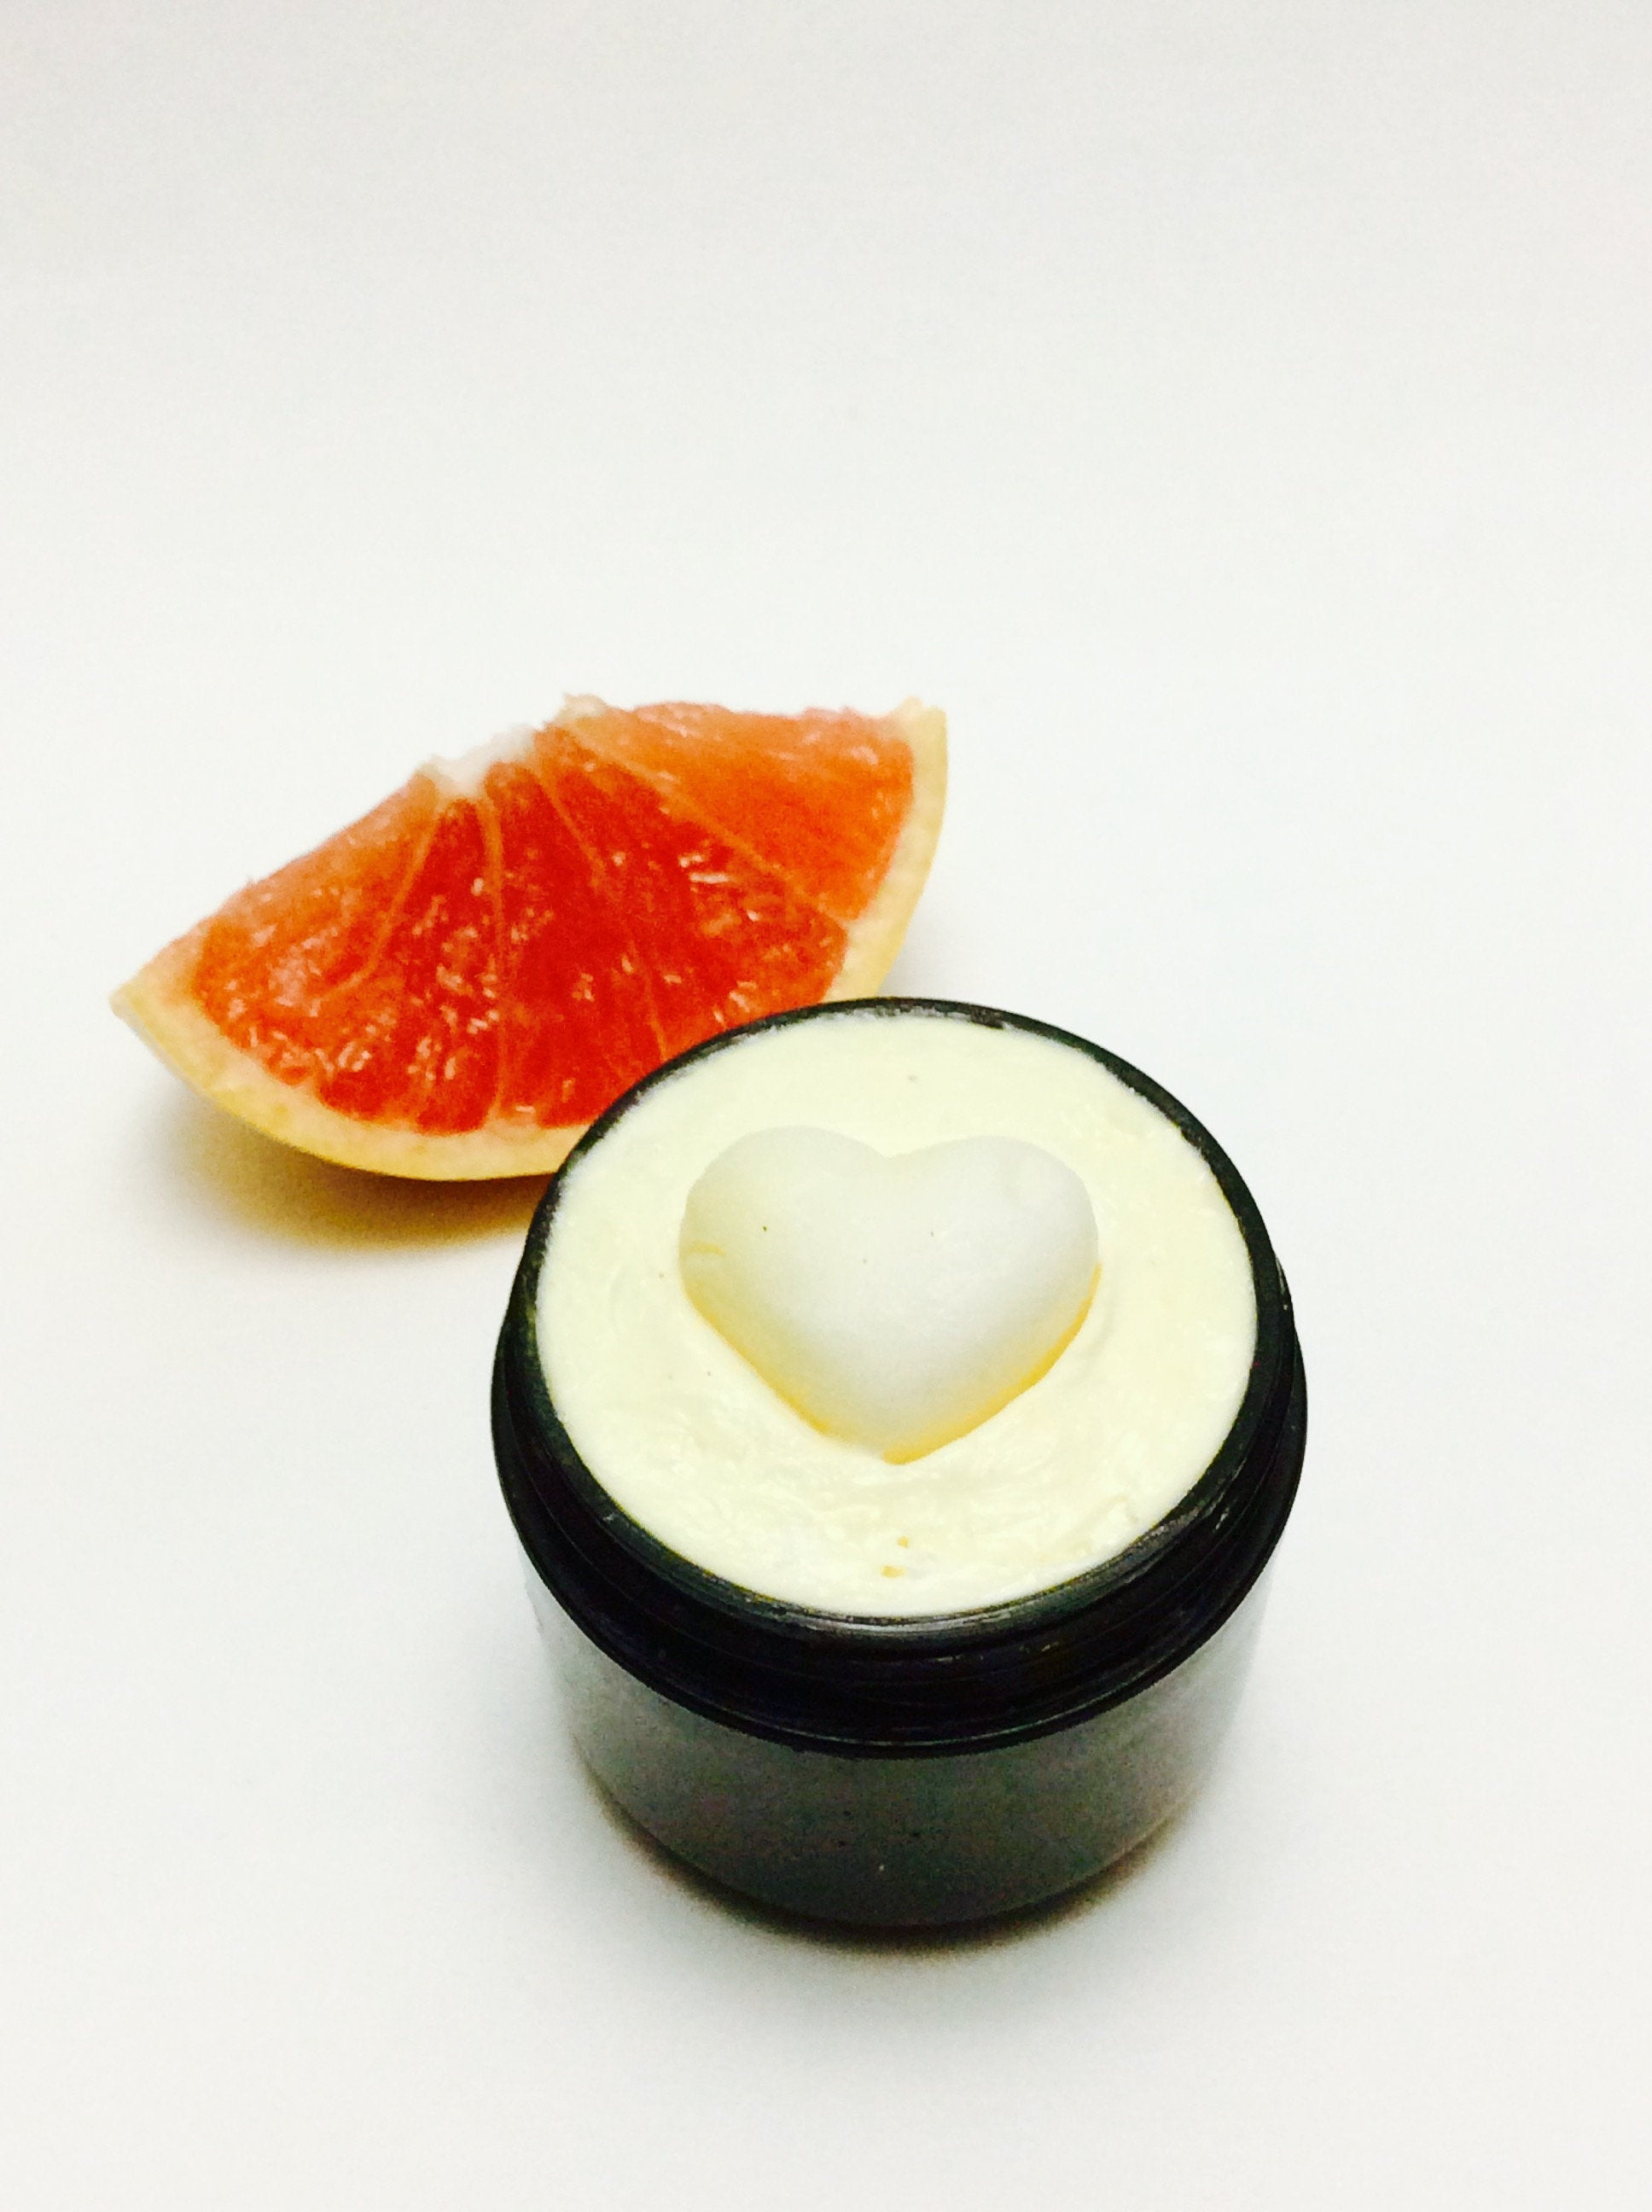 Body Butter, Grapefruit Whipped Shea Butter, Body Lotion, Cream, Natural Moisturizer, Selff Care Kit, Care Package, Gift for Her